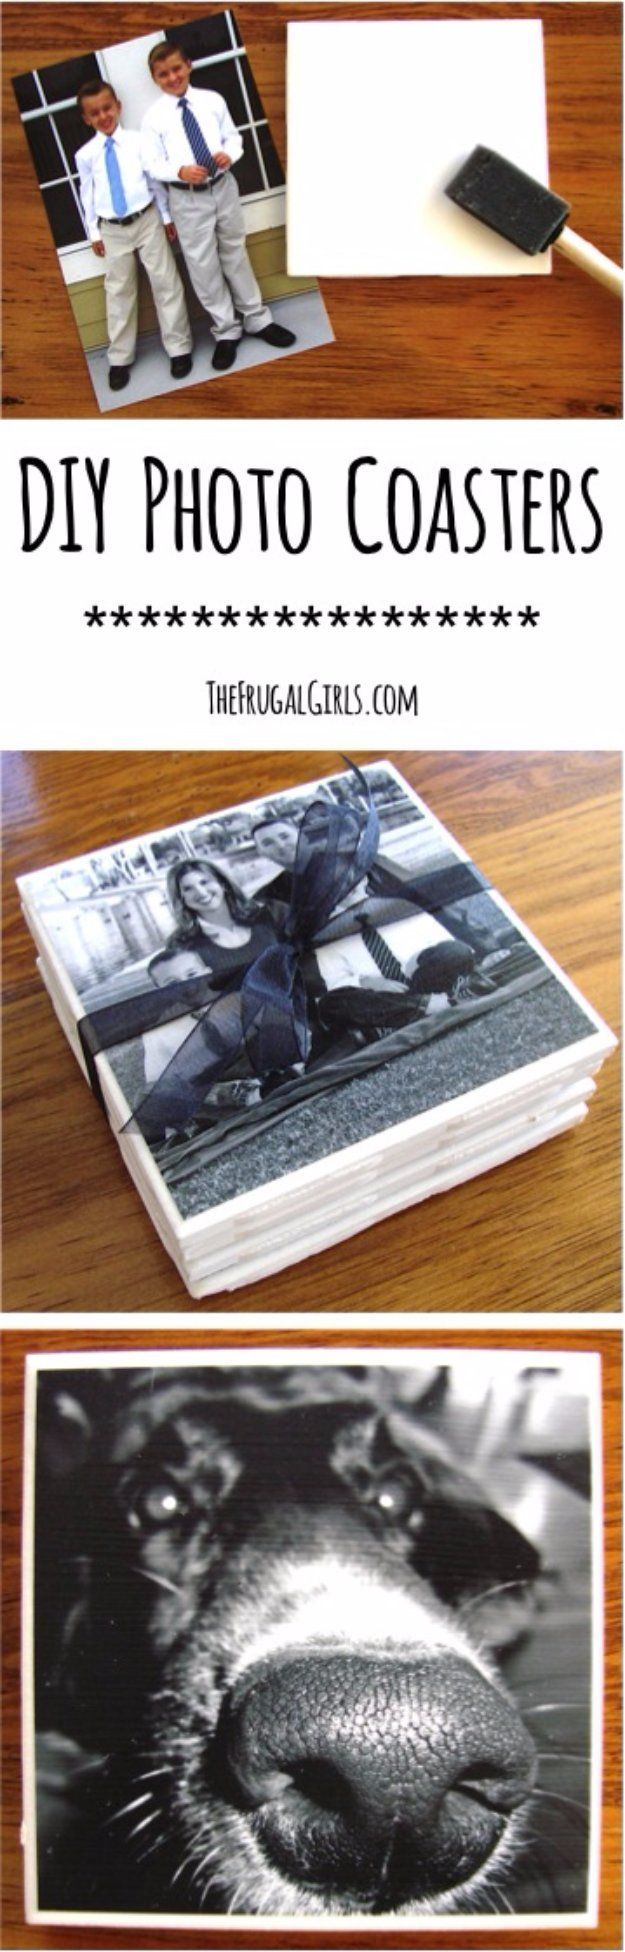 Easy Crafts To Make and Sell - Beautiful Photo Coasters - Cool Homemade Craft Projects You Can Sell On Etsy, at Craft Fairs, Online and in Stores.…